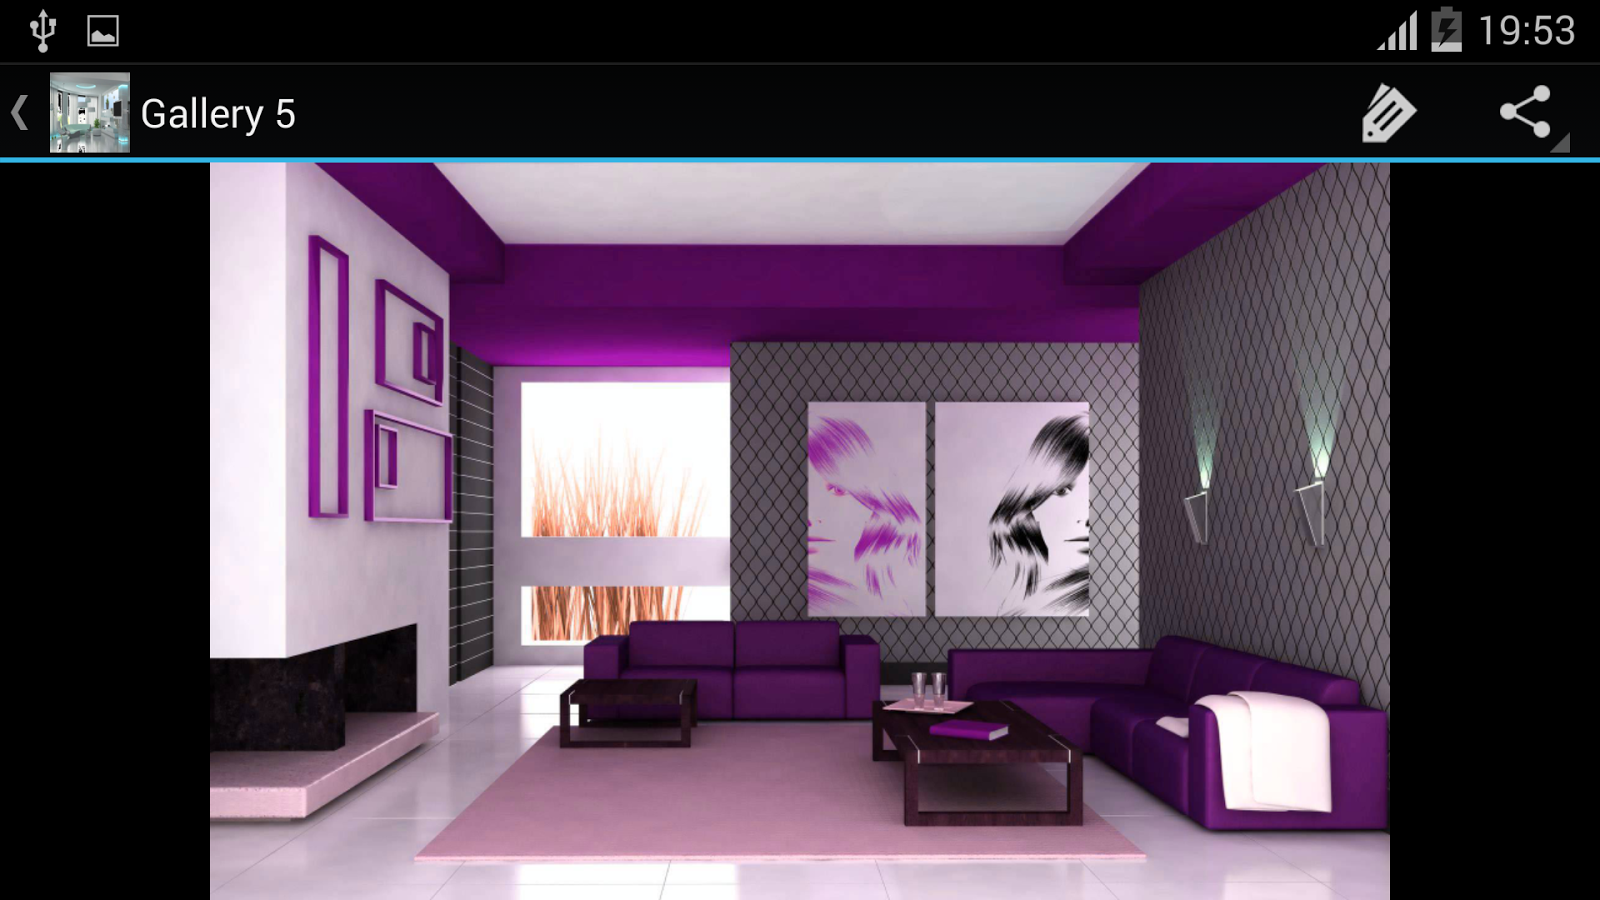 Room design app pc home decor for Room design app using photos